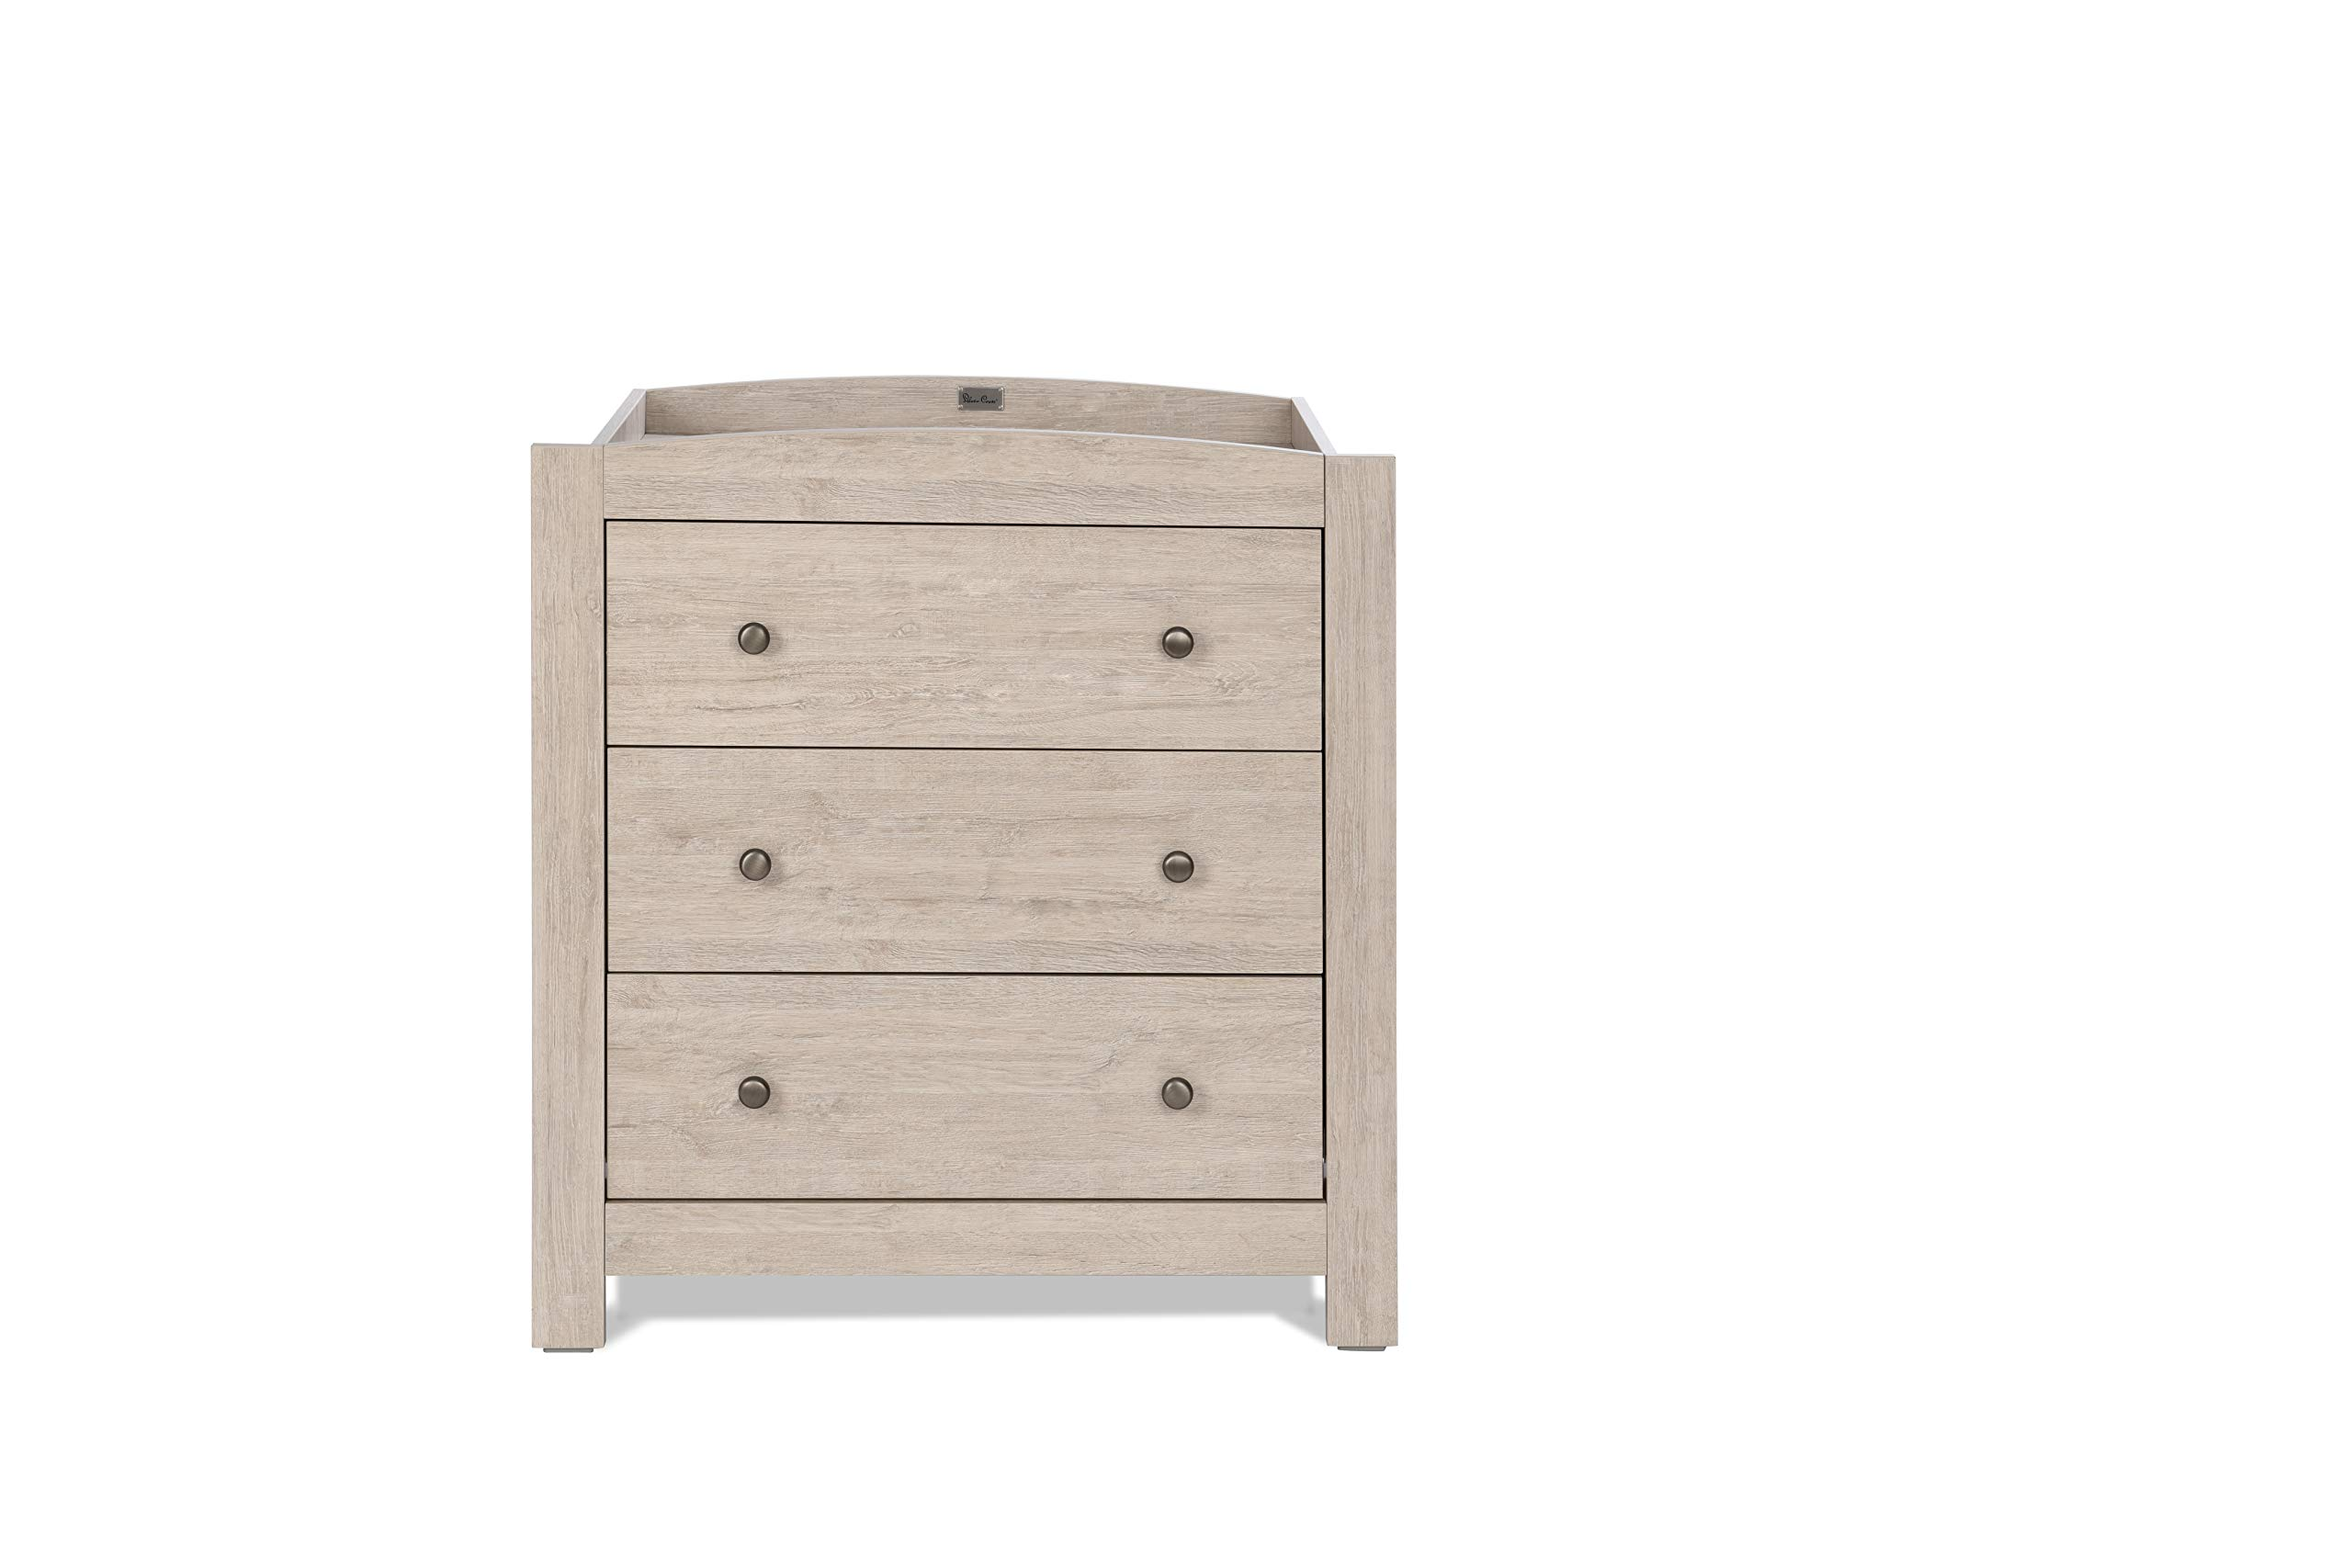 Silver Cross New England Cot Bed and Dresser Silver Cross 3 base height positions Suitable from birth to 4 years Converts into toddler bed 4